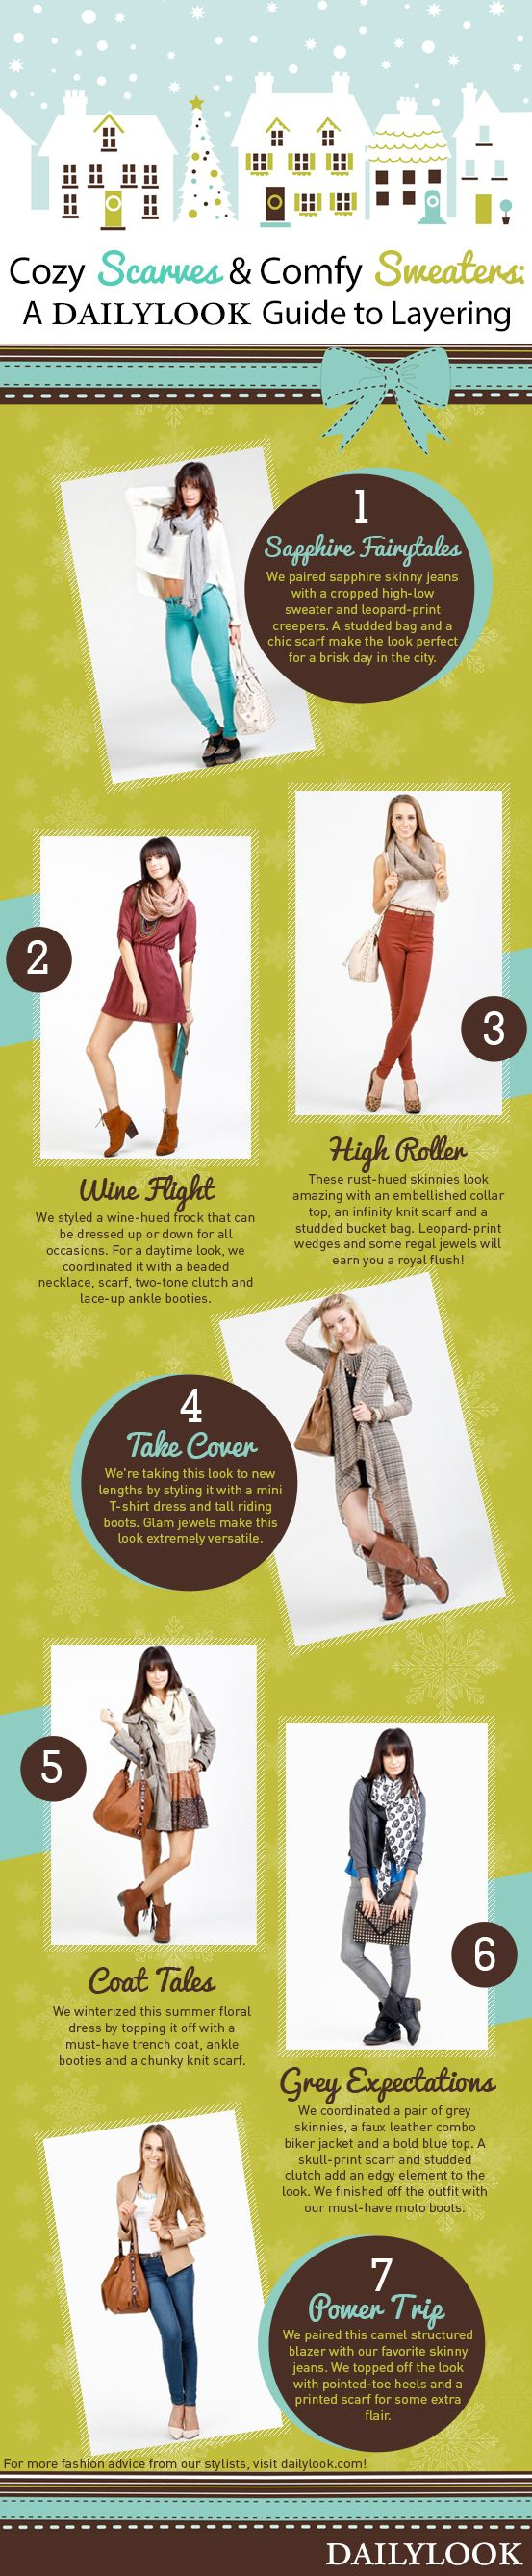 DailyLook.com: DailyLook Winter Fashion and Style with Scarves, Sweaters and Layering